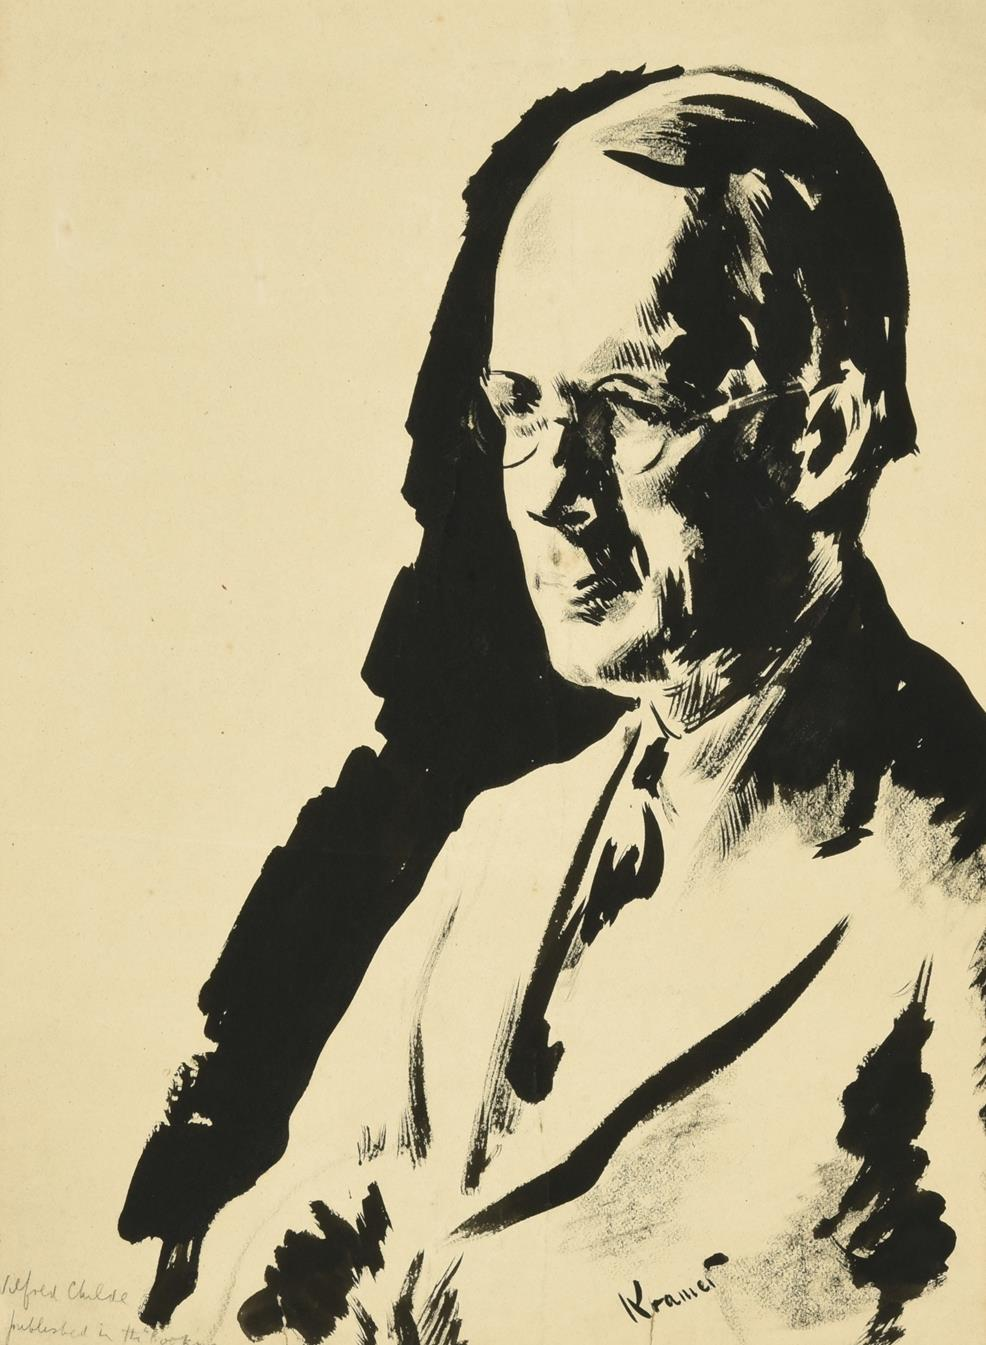 Jacob Kramer (1892-1962) ''Wilfred Childe'', head and shoulders portrait Signed, inscribed with